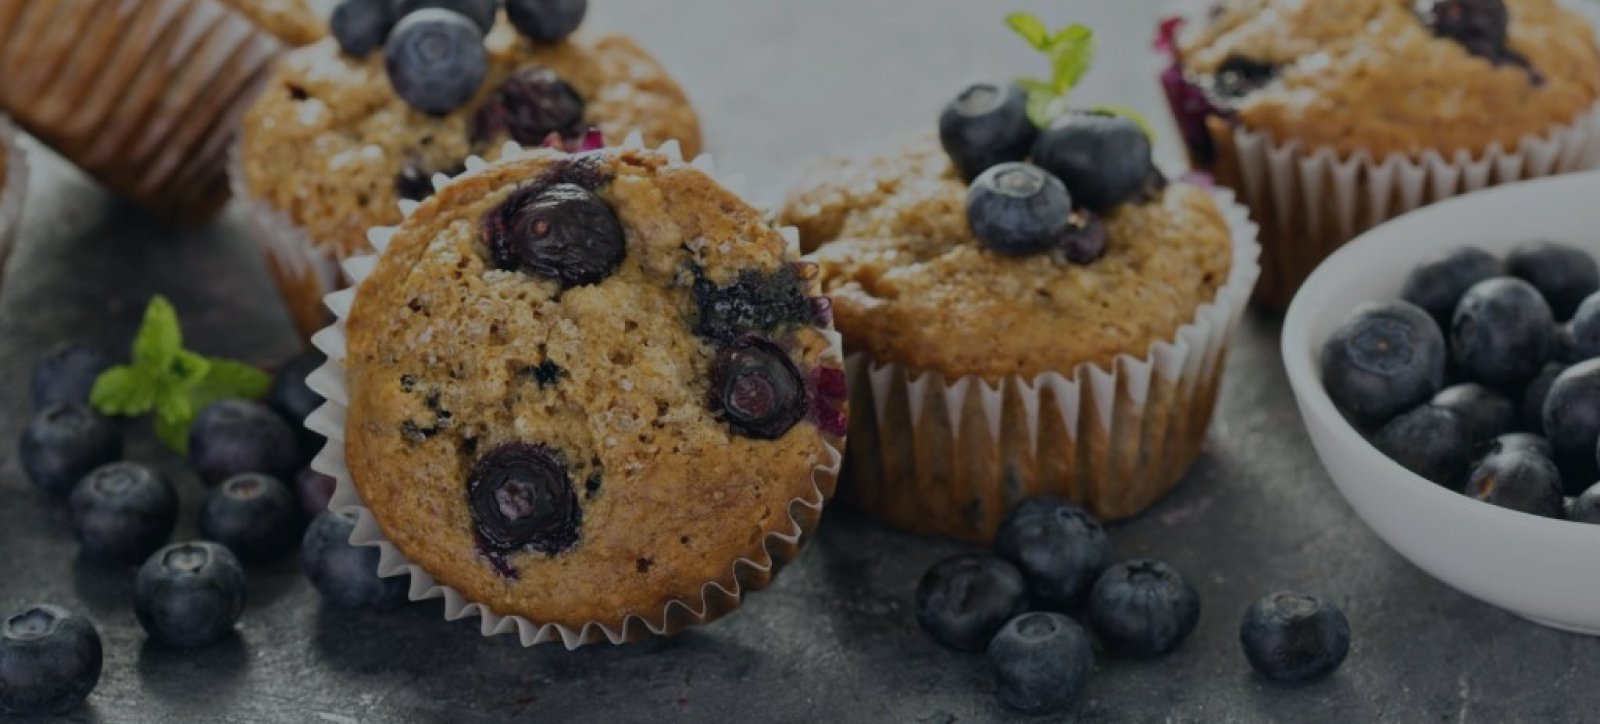 Blueberry muffins baked in a Chicago Metallic muffin pan